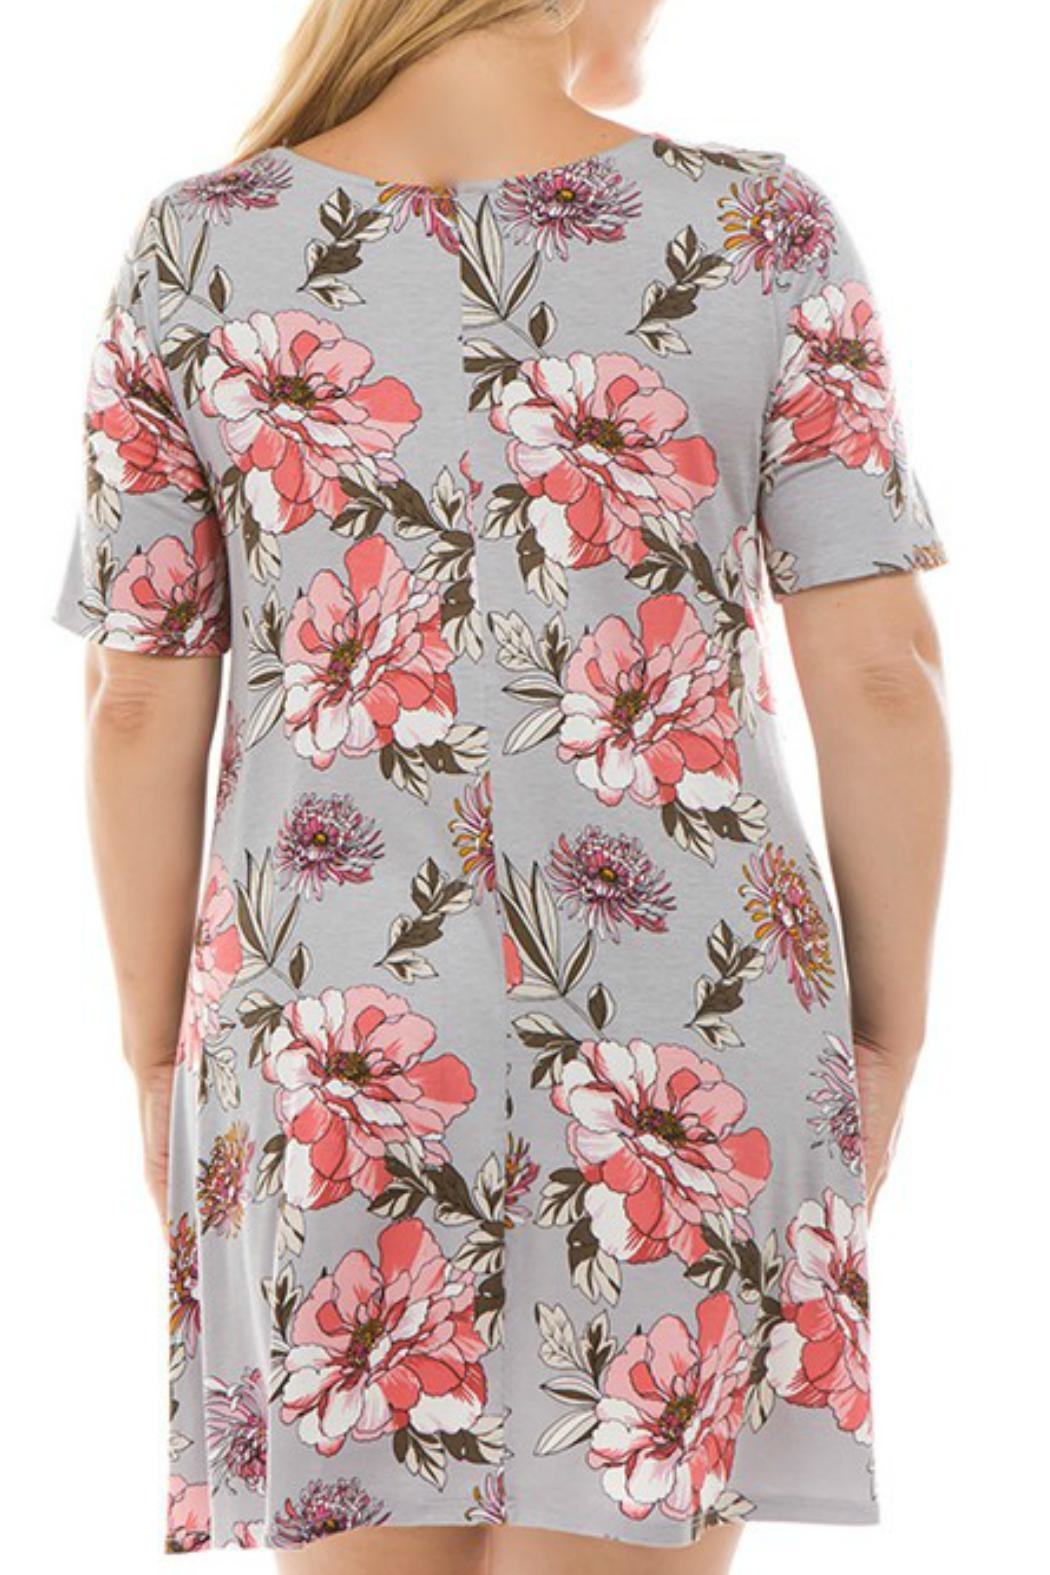 Spin USA Floral Criss-Cross Dress - Front Full Image